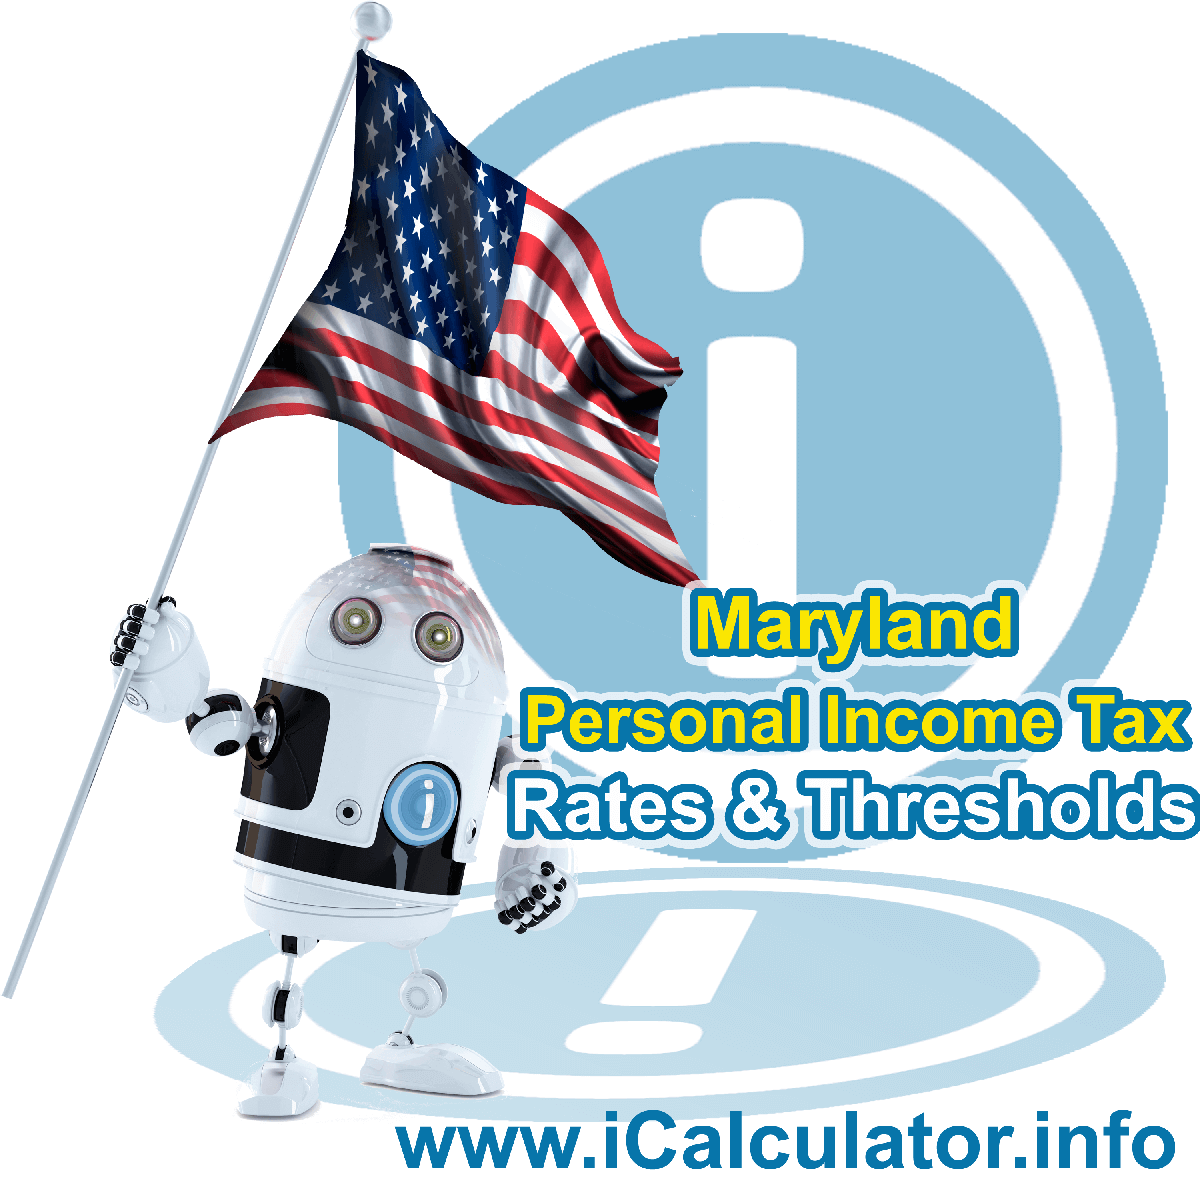 Maryland State Tax Tables 2019. This image displays details of the Maryland State Tax Tables for the 2019 tax return year which is provided in support of the 2019 US Tax Calculator